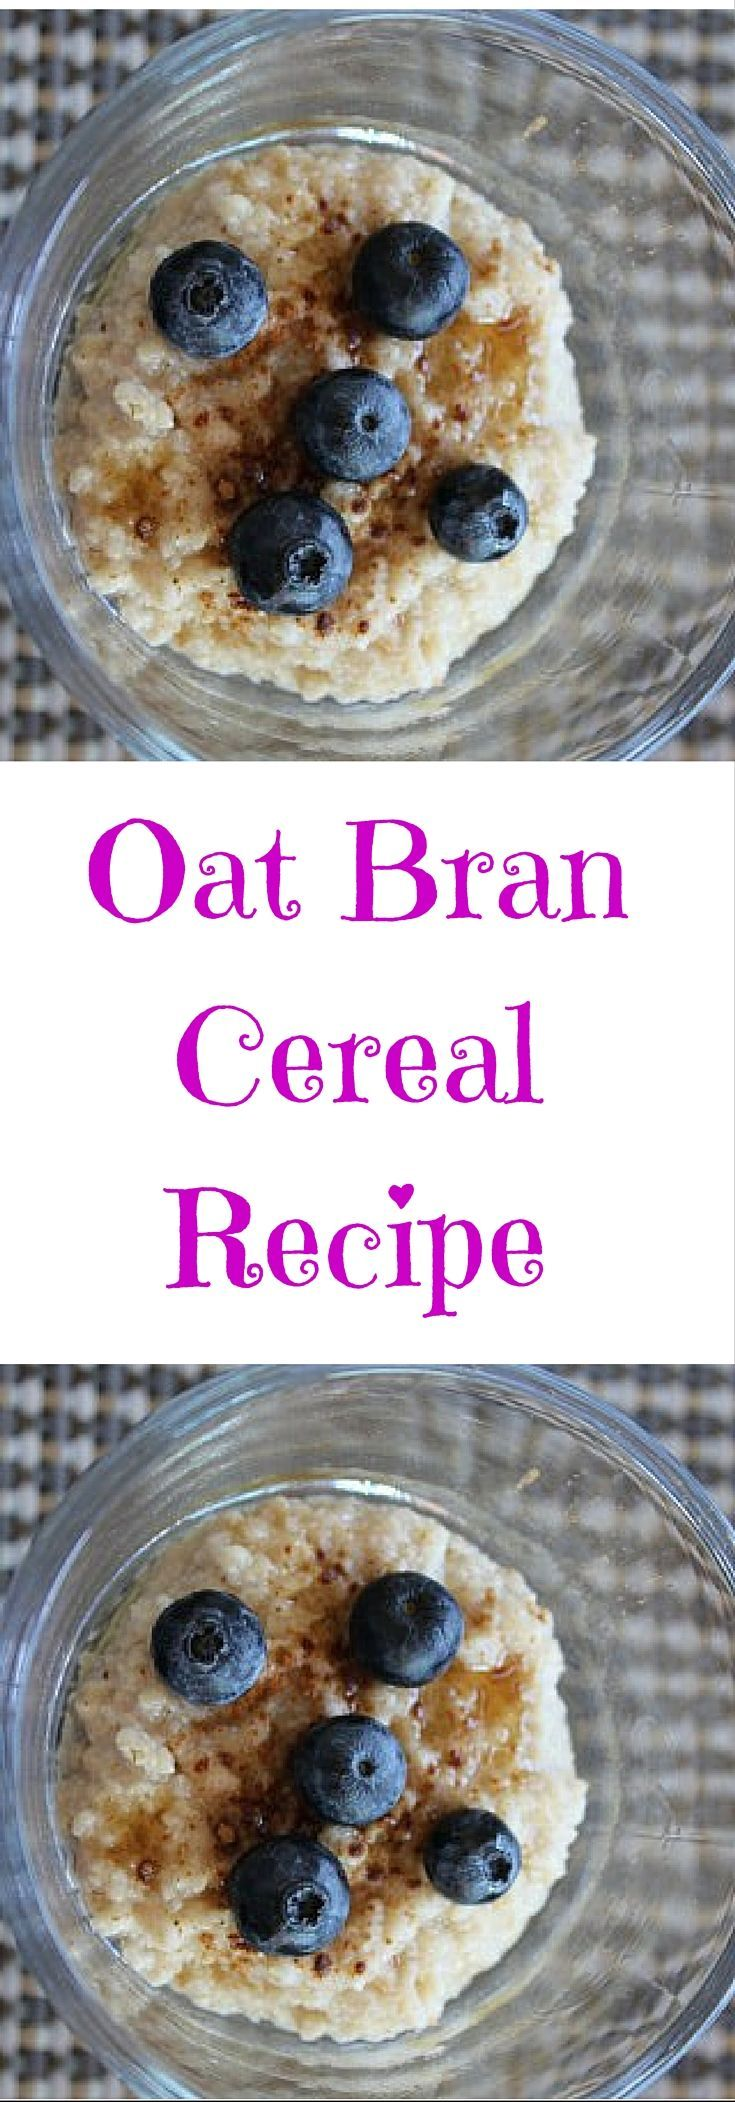 This oat bran cereal recipe is tasty and delicious for breakfast. Click to check this out or pin to save for later.